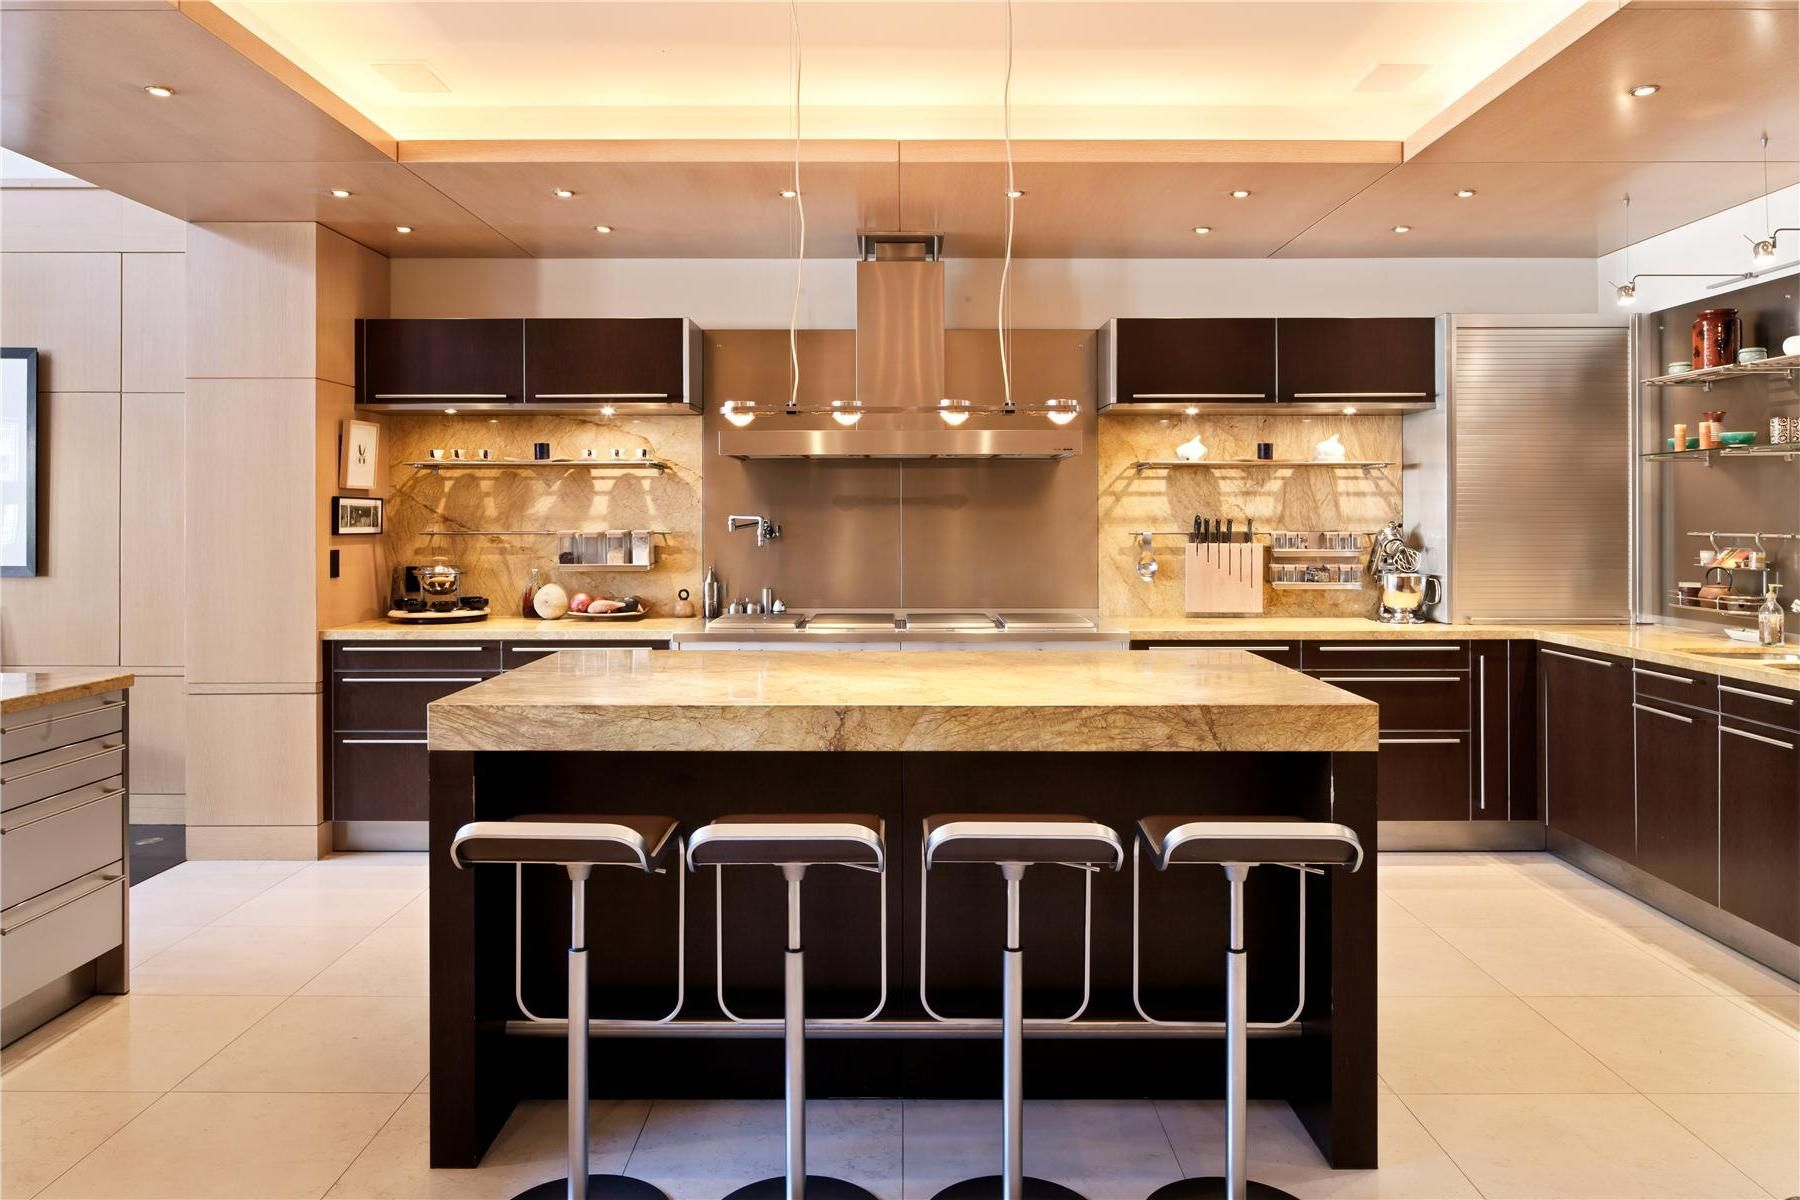 Inside Luxury Homes Bathroom luxury homes interior kitchen pictures with nifty design exemplary